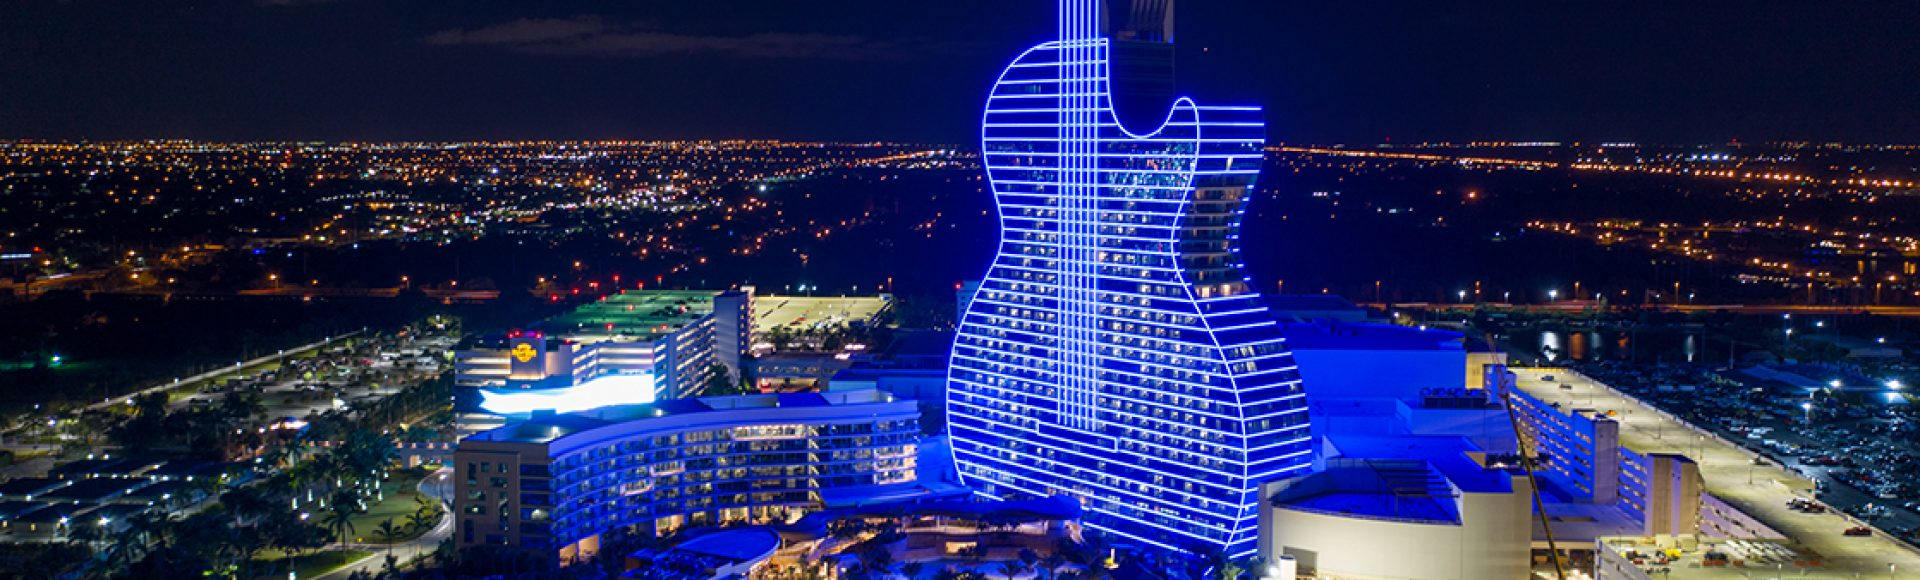 Aerial photo of the Seminole Hard rock casino guitar shaped hotel